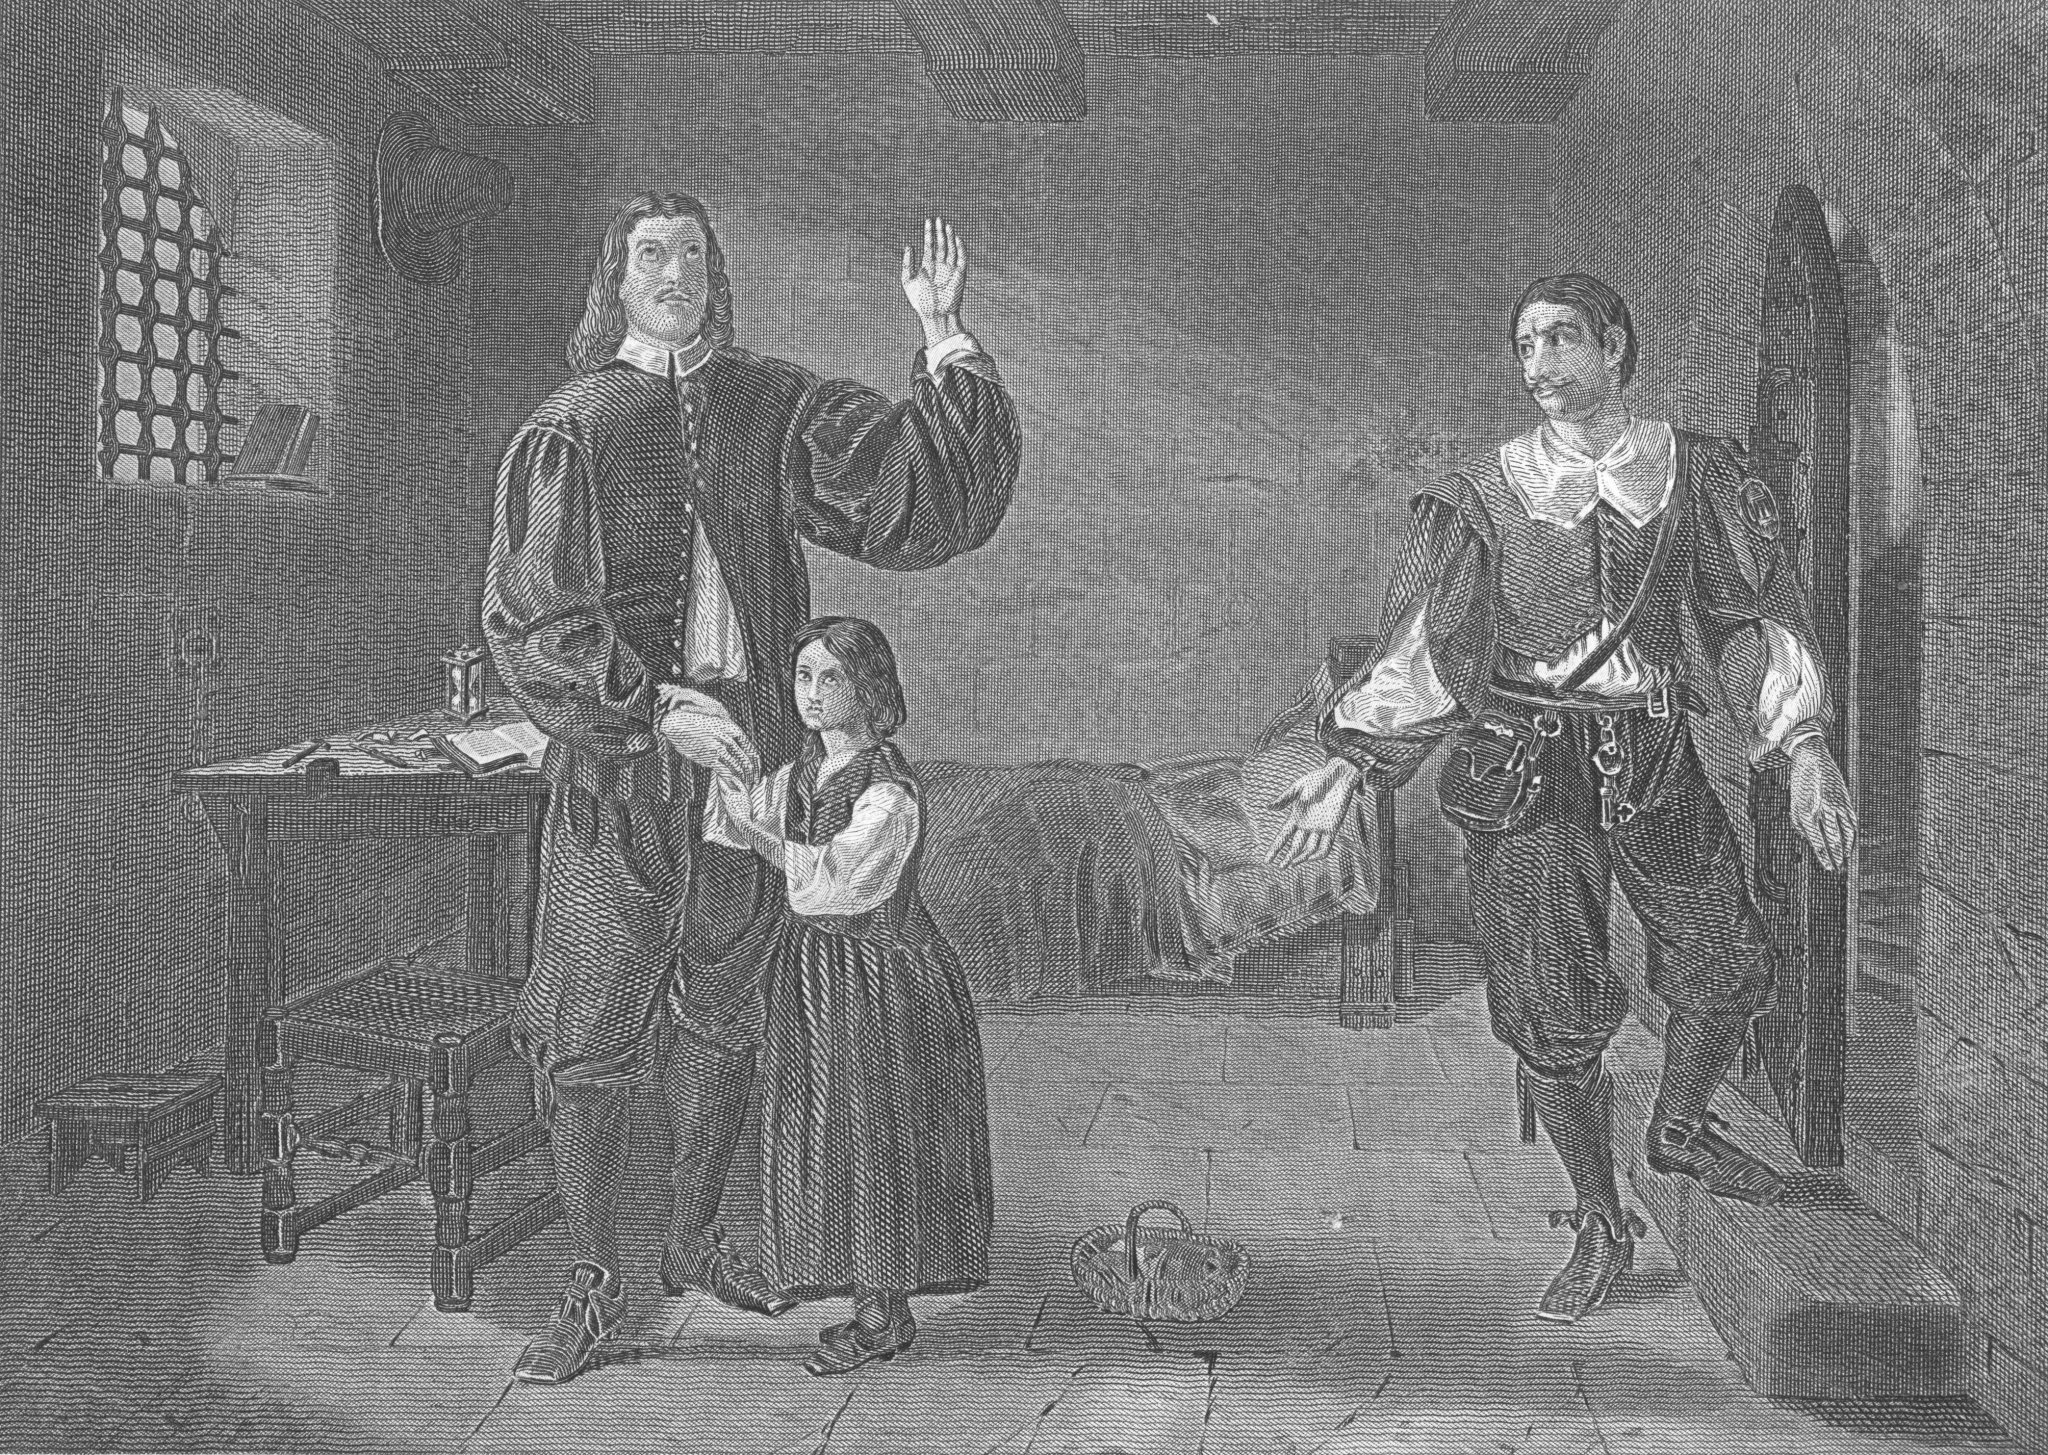 John_Bunyan_In_Bedford_Jail_1667_-_Medium_Quality